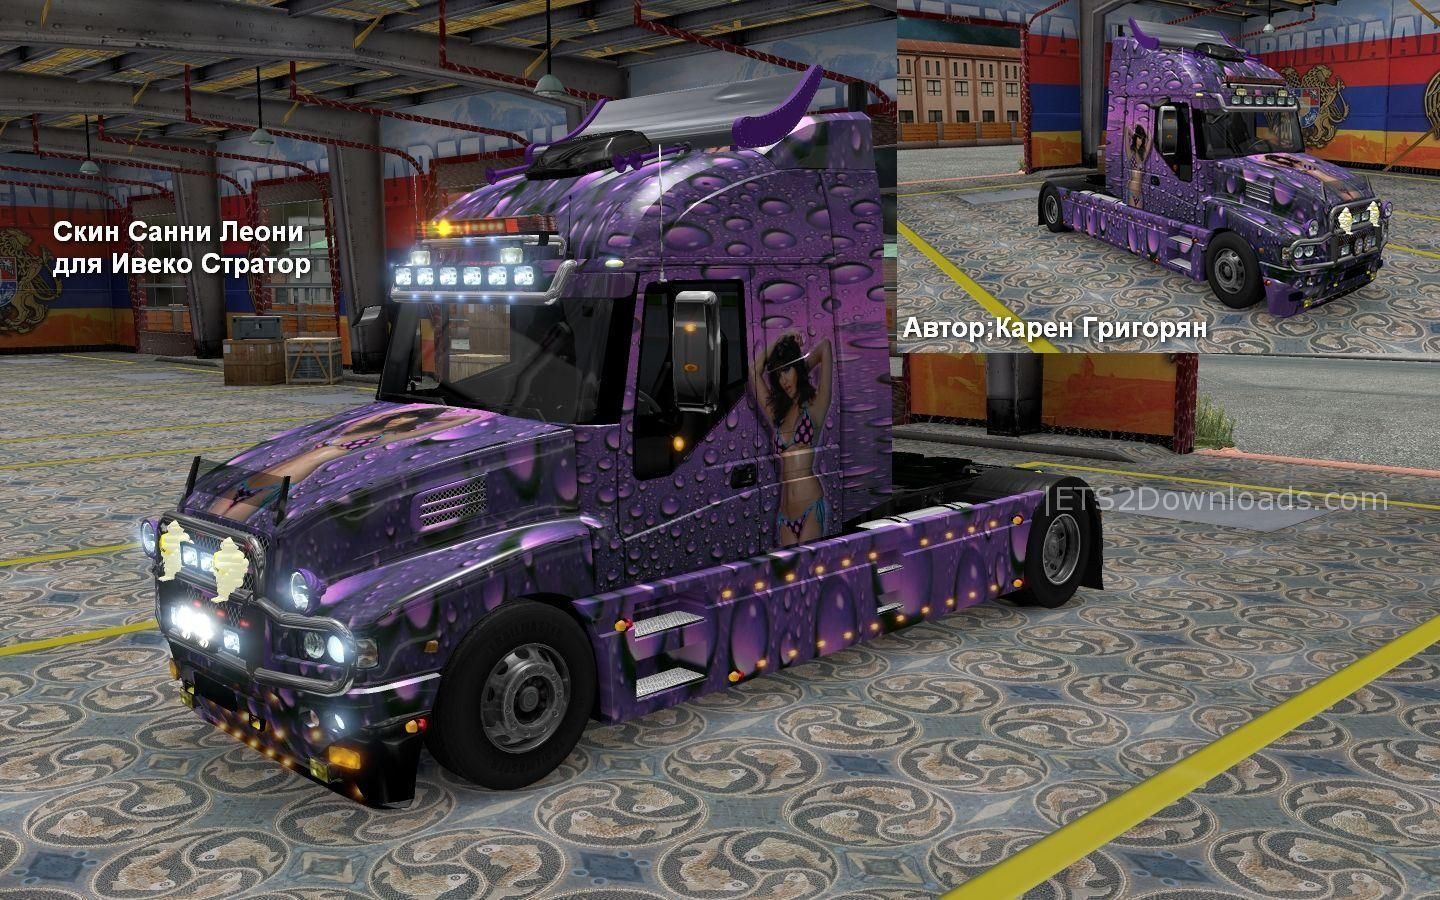 iveco-strator-fixed-tuning-6